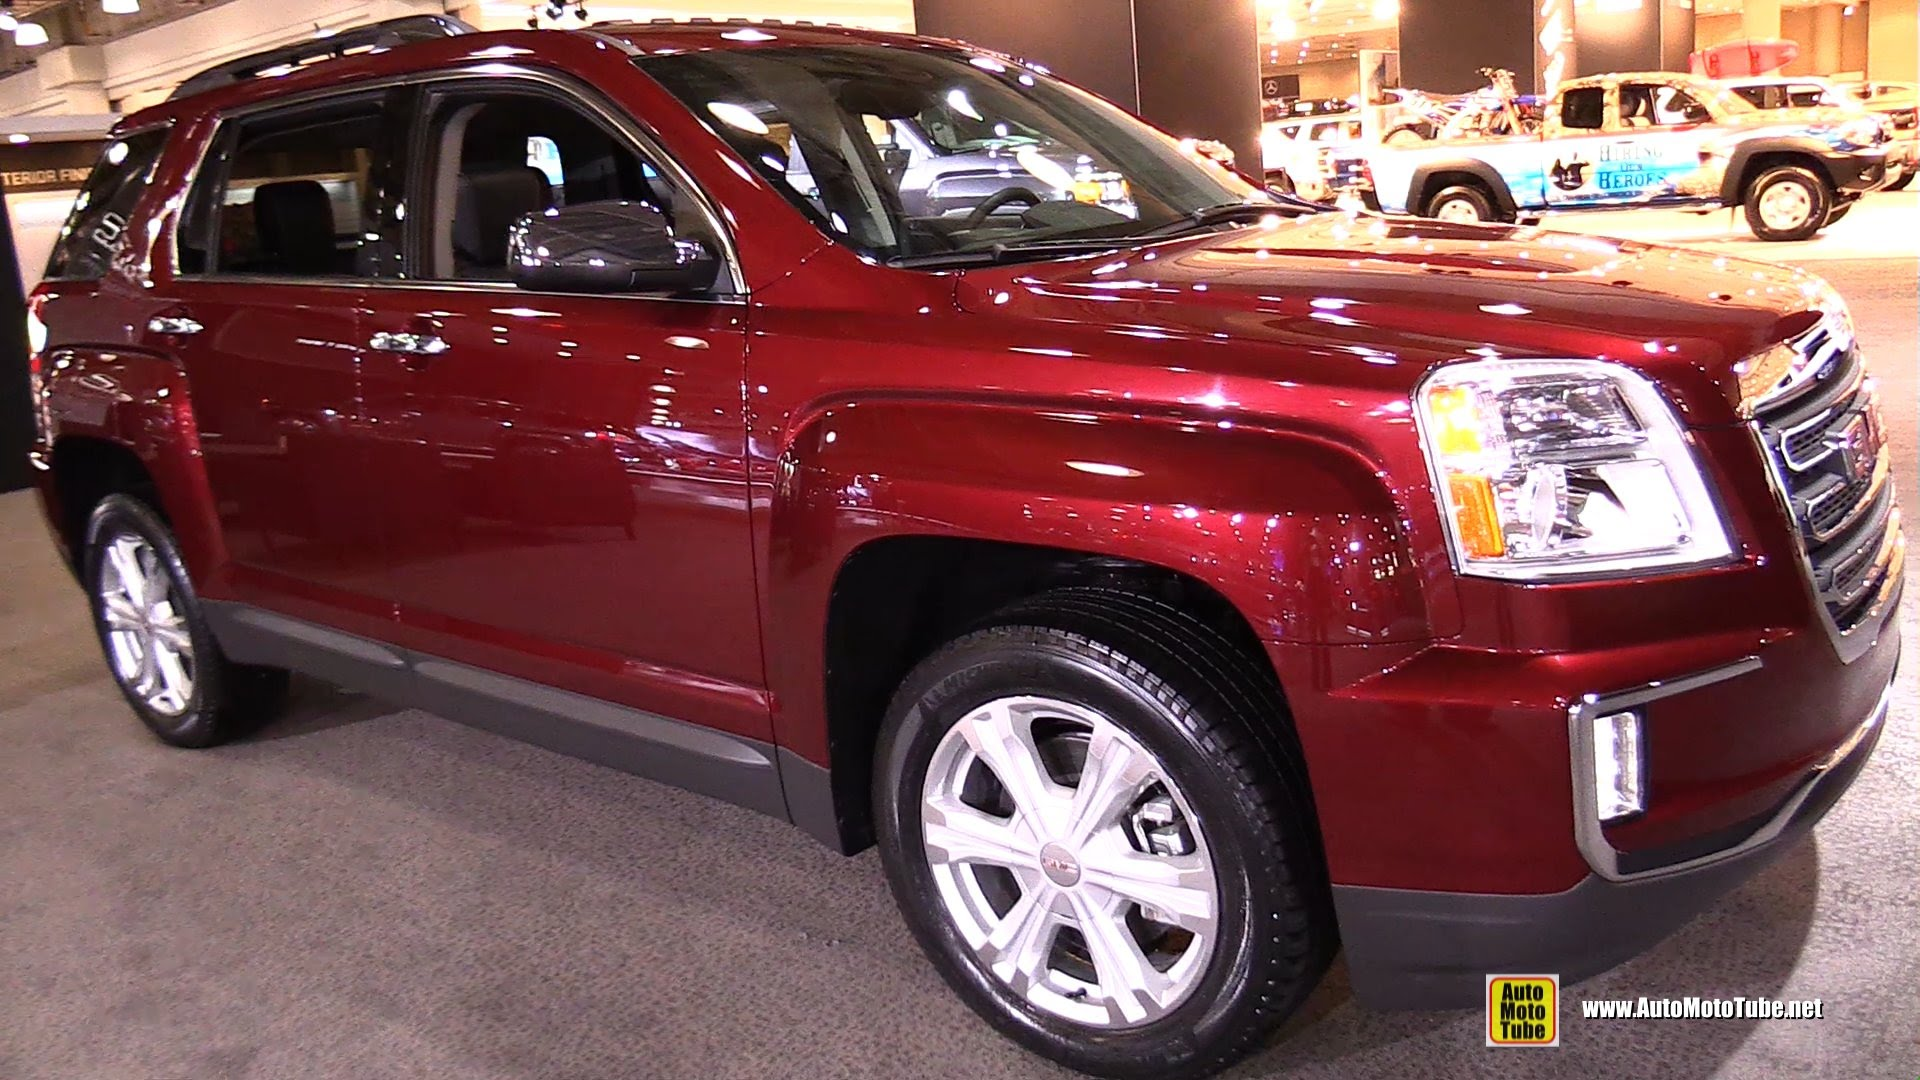 2016 GMC Terrain SLT - Exterior and Interior Walkaround - 2015 New York Auto Show